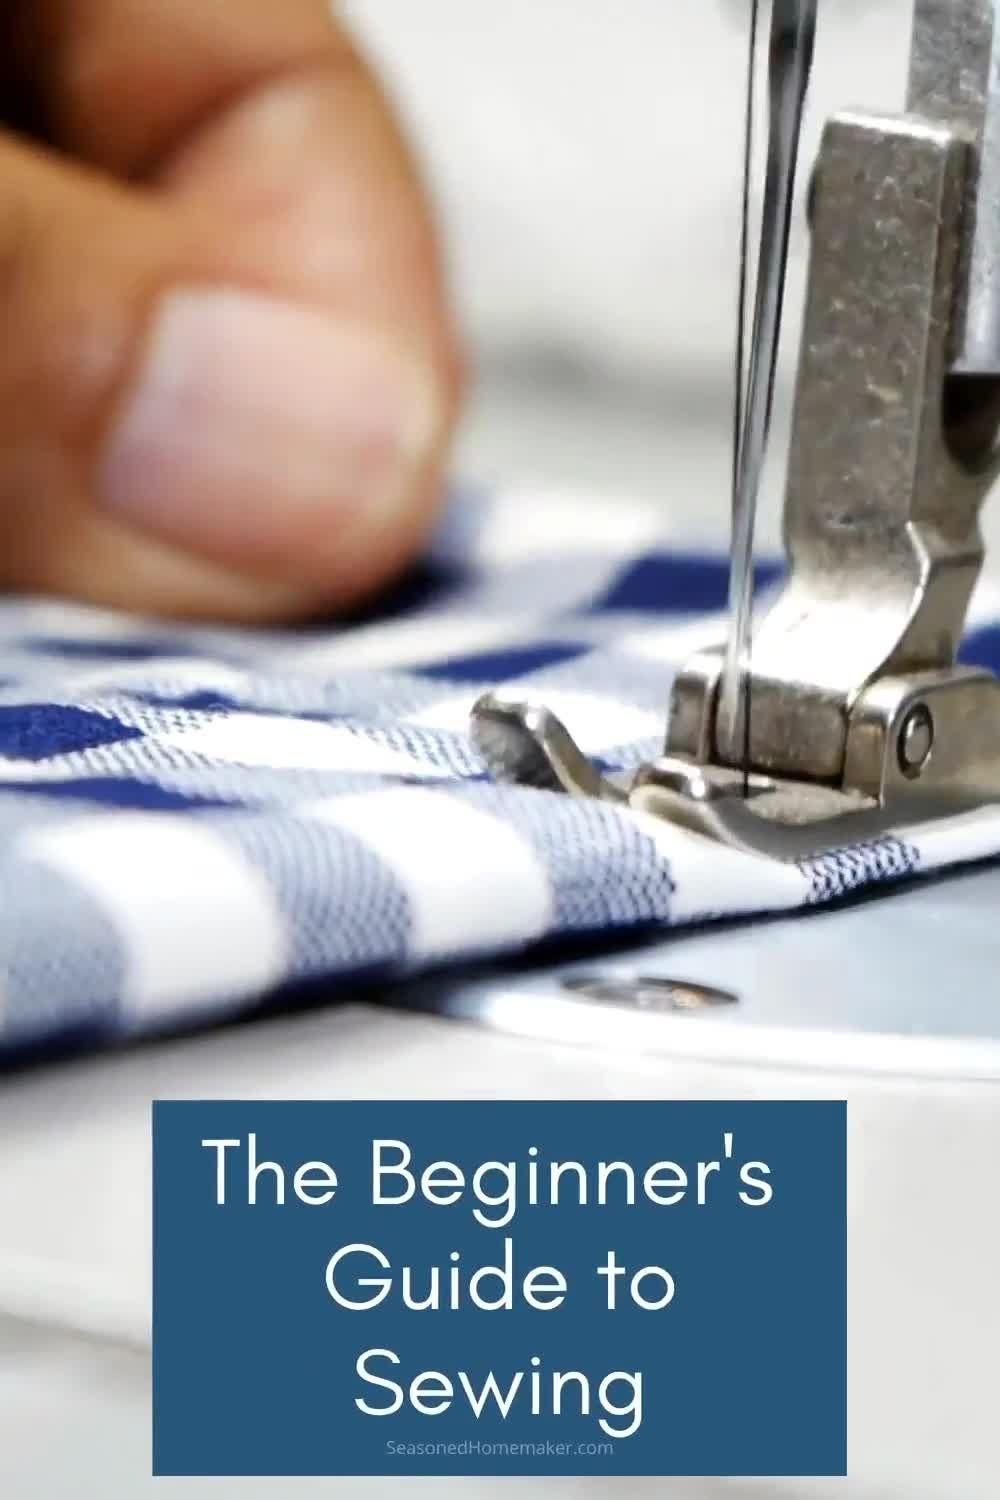 Want to learn to sew but don't know where to start? The Beginner